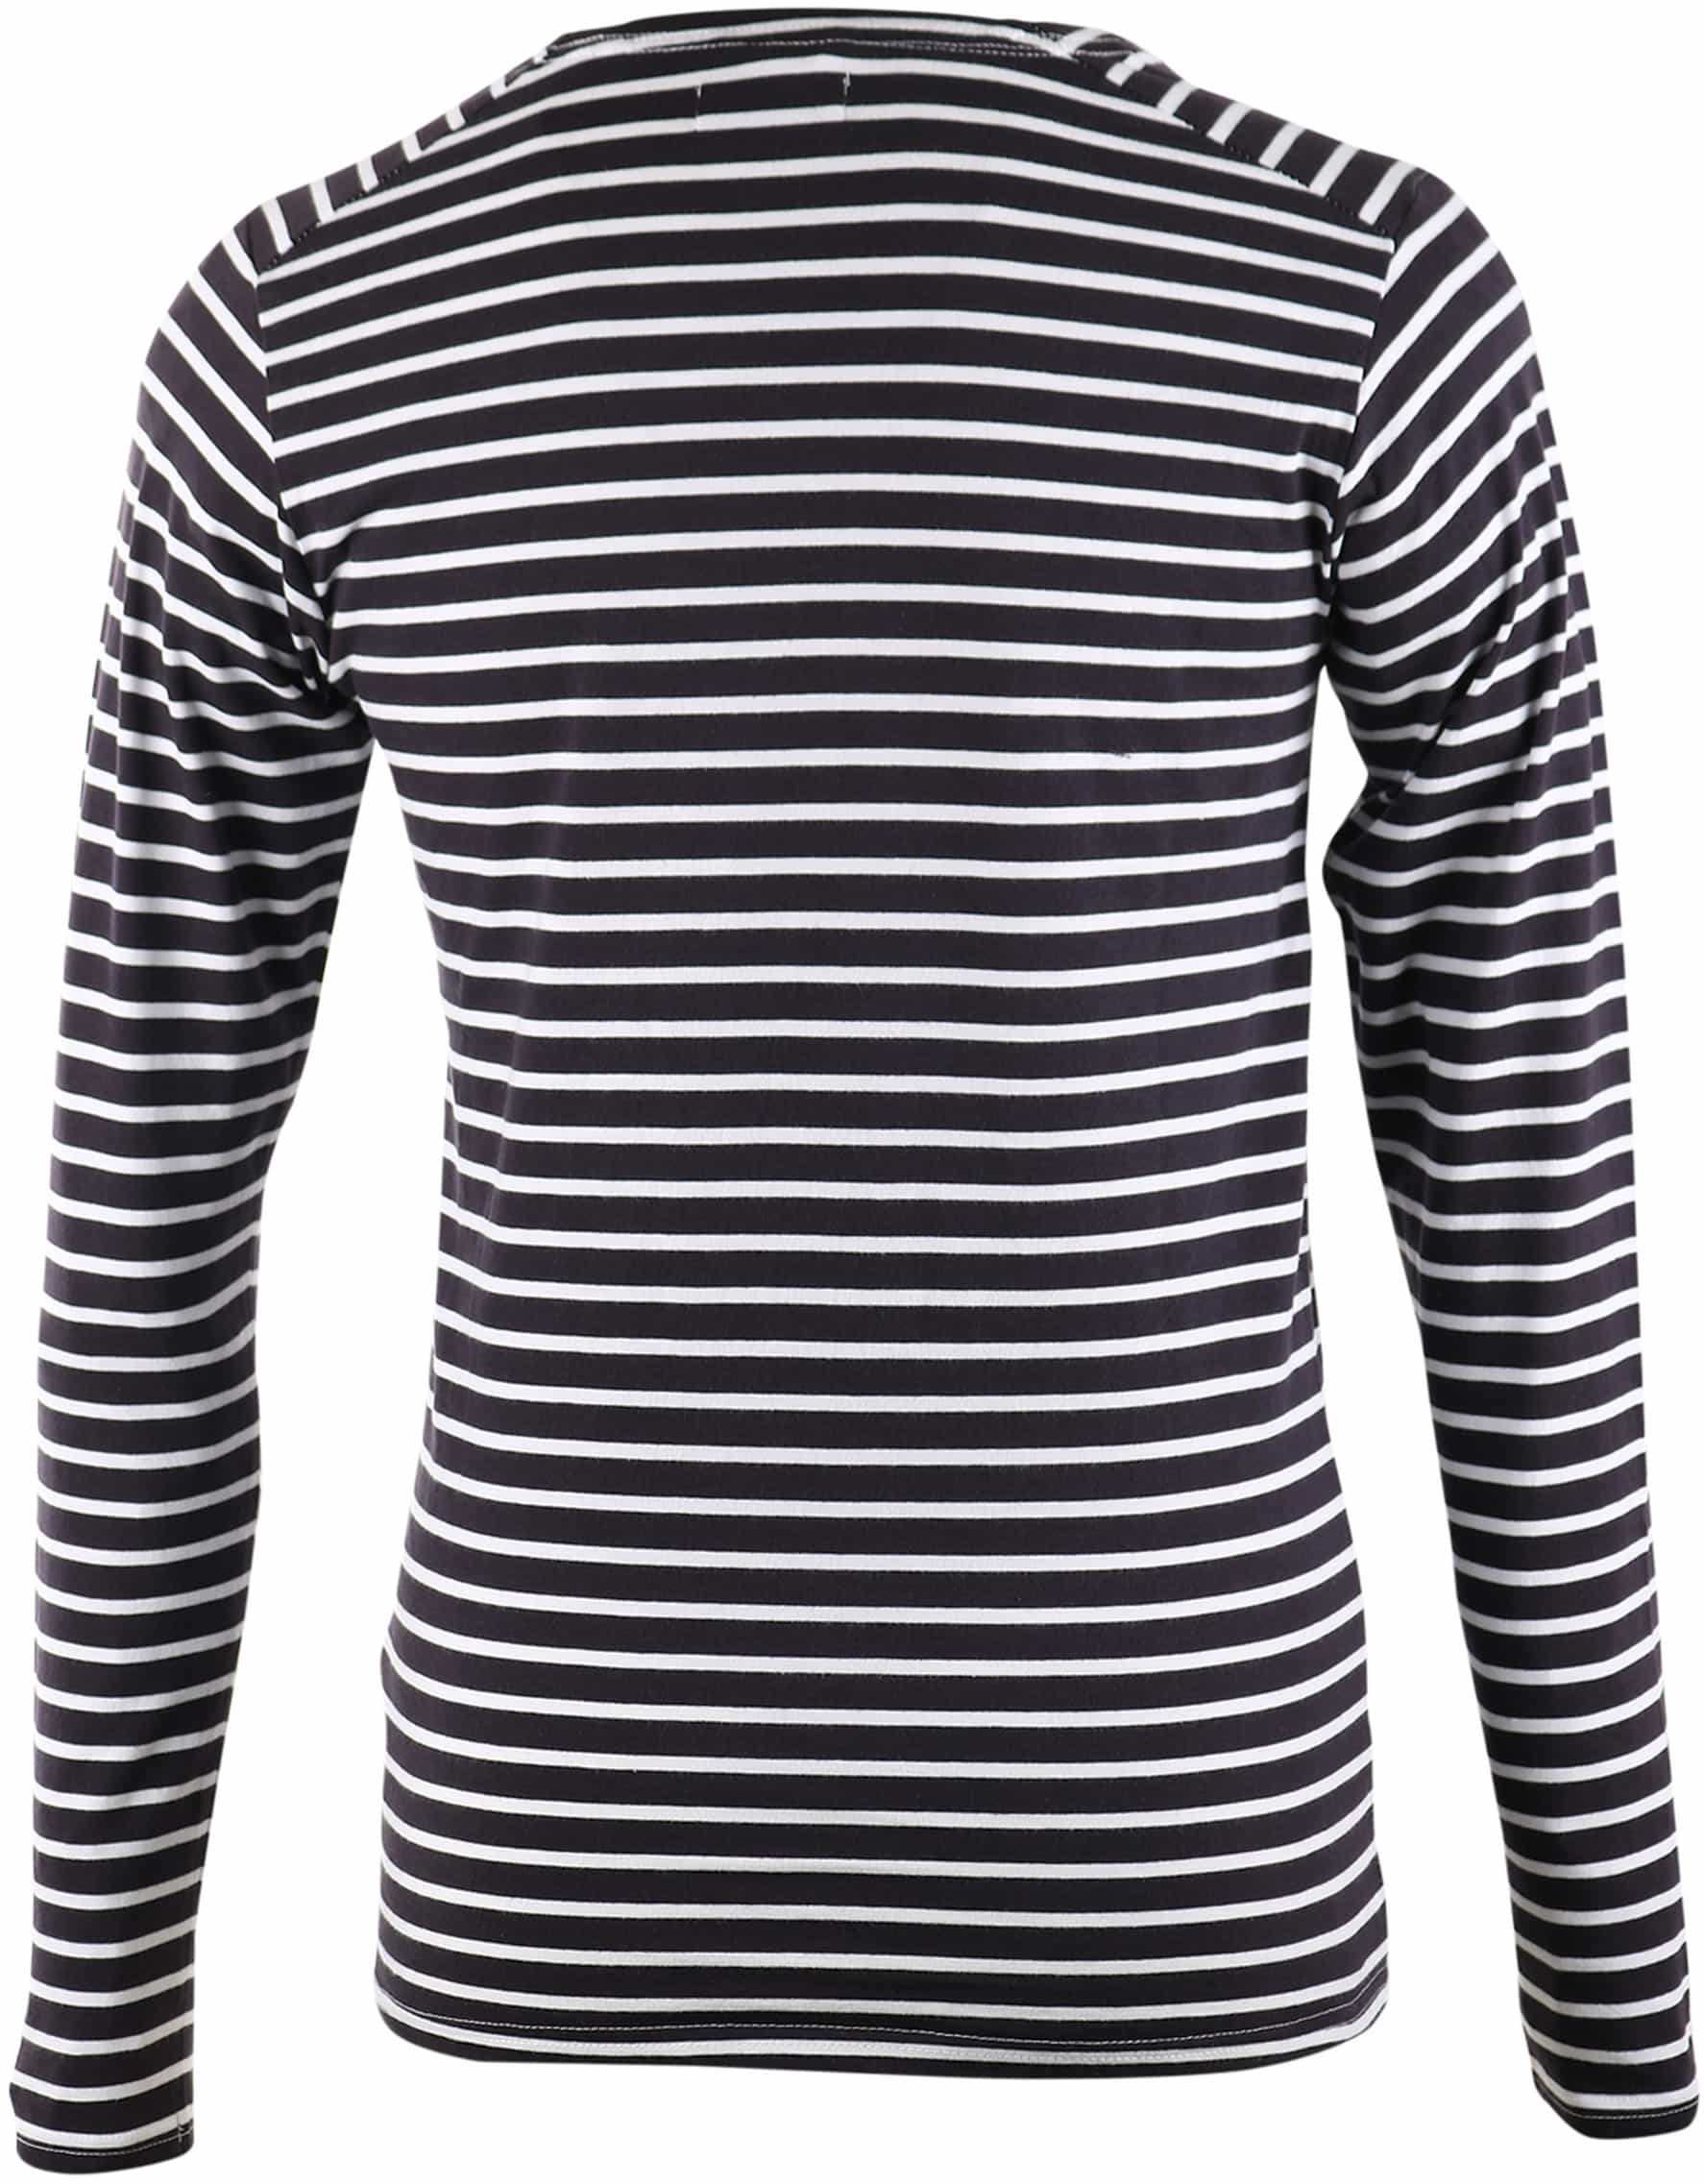 Dstrezzed Longsleeve T-shirt Navy Stripes